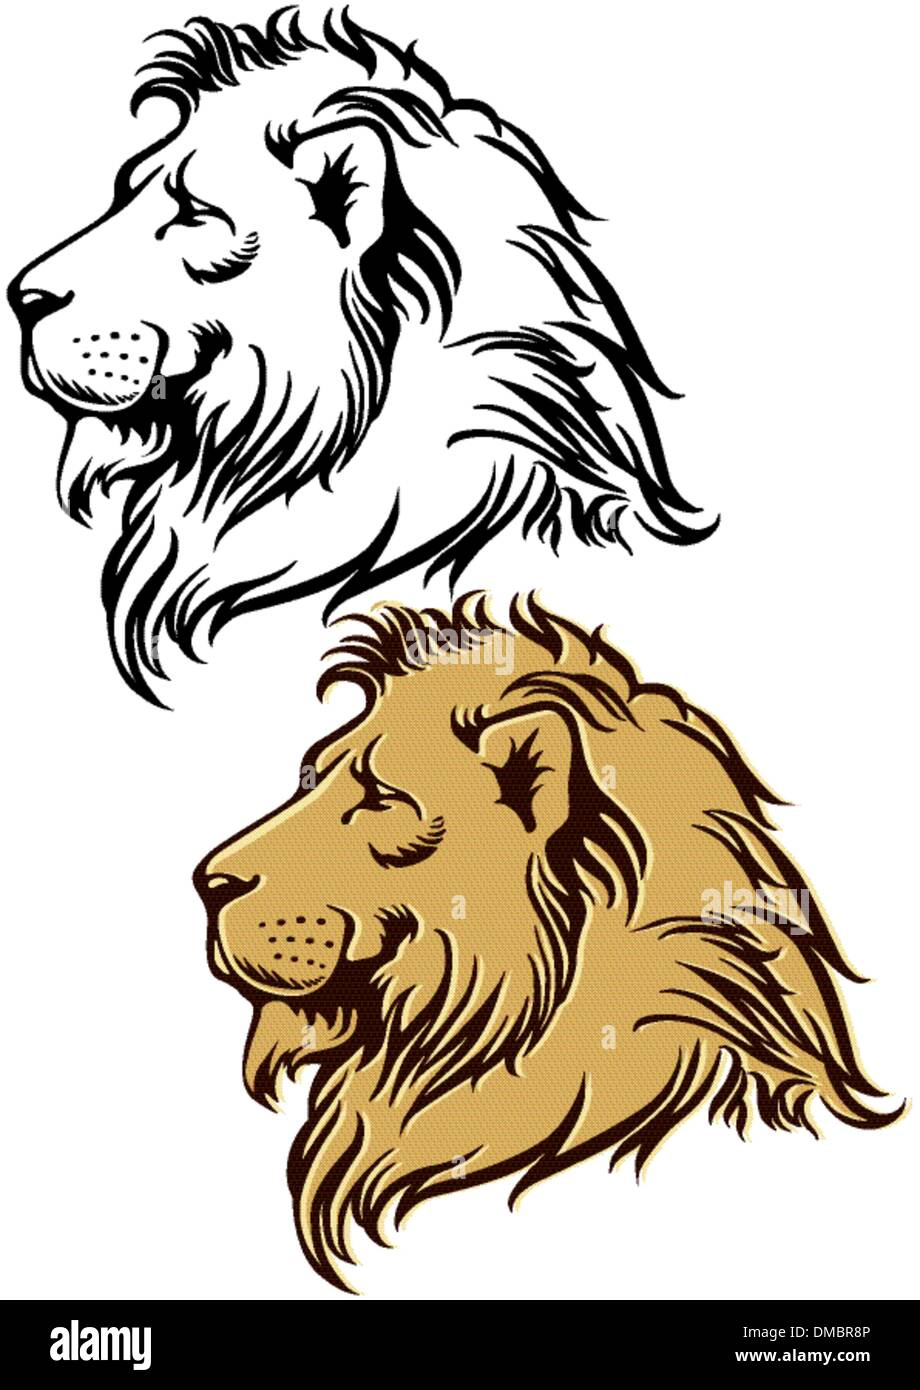 Lion in profile - Stock Vector